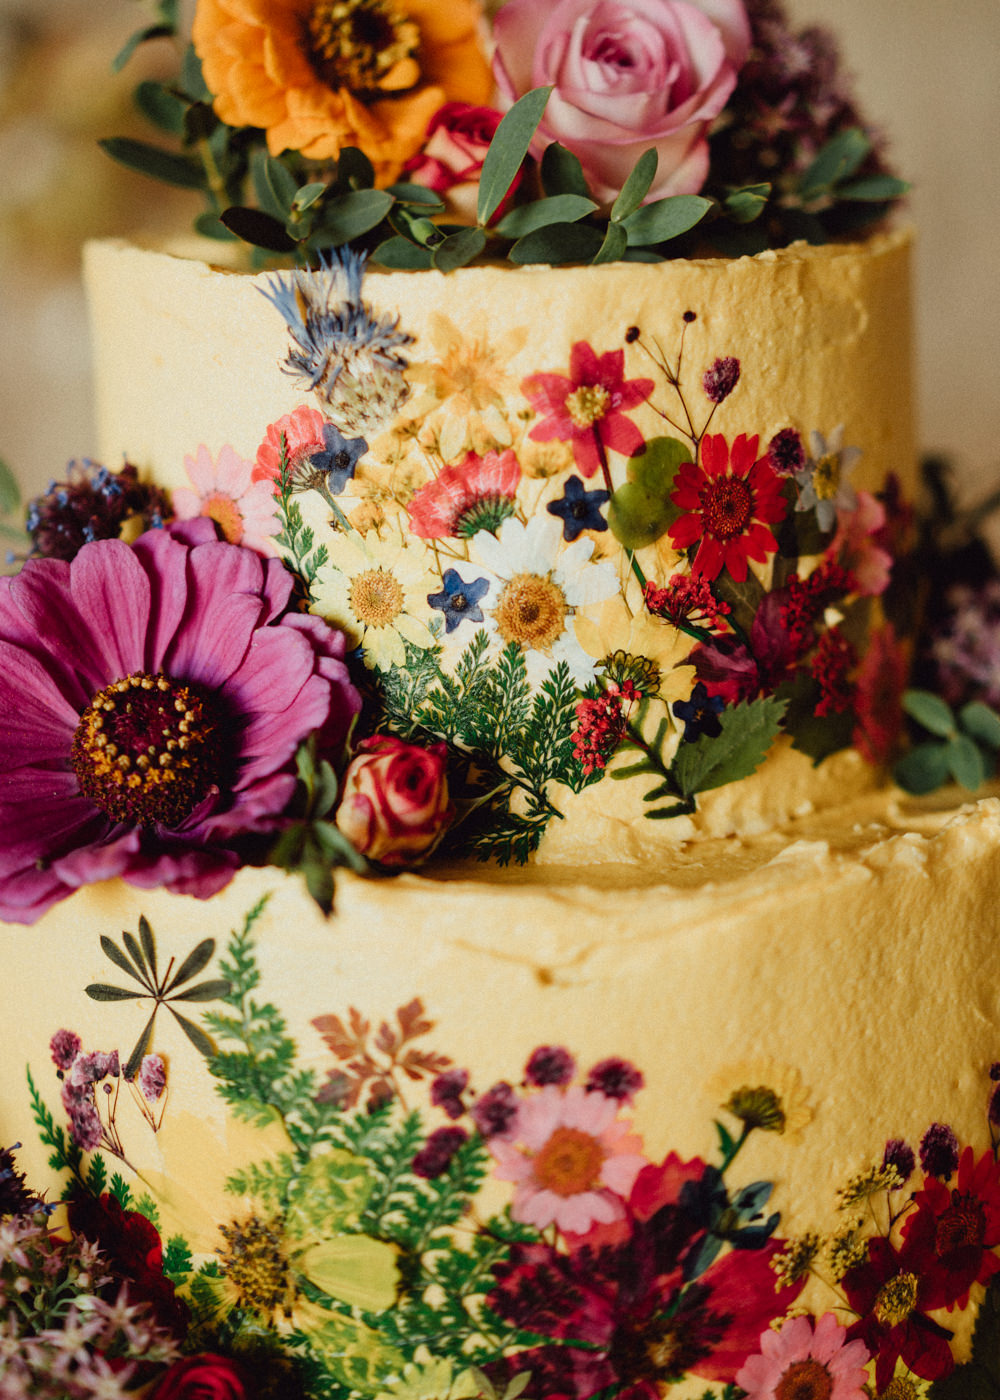 Petal Cake Edible Flowers Floral Buttercream Priors Court Barn Wedding Emily & Steve Photography